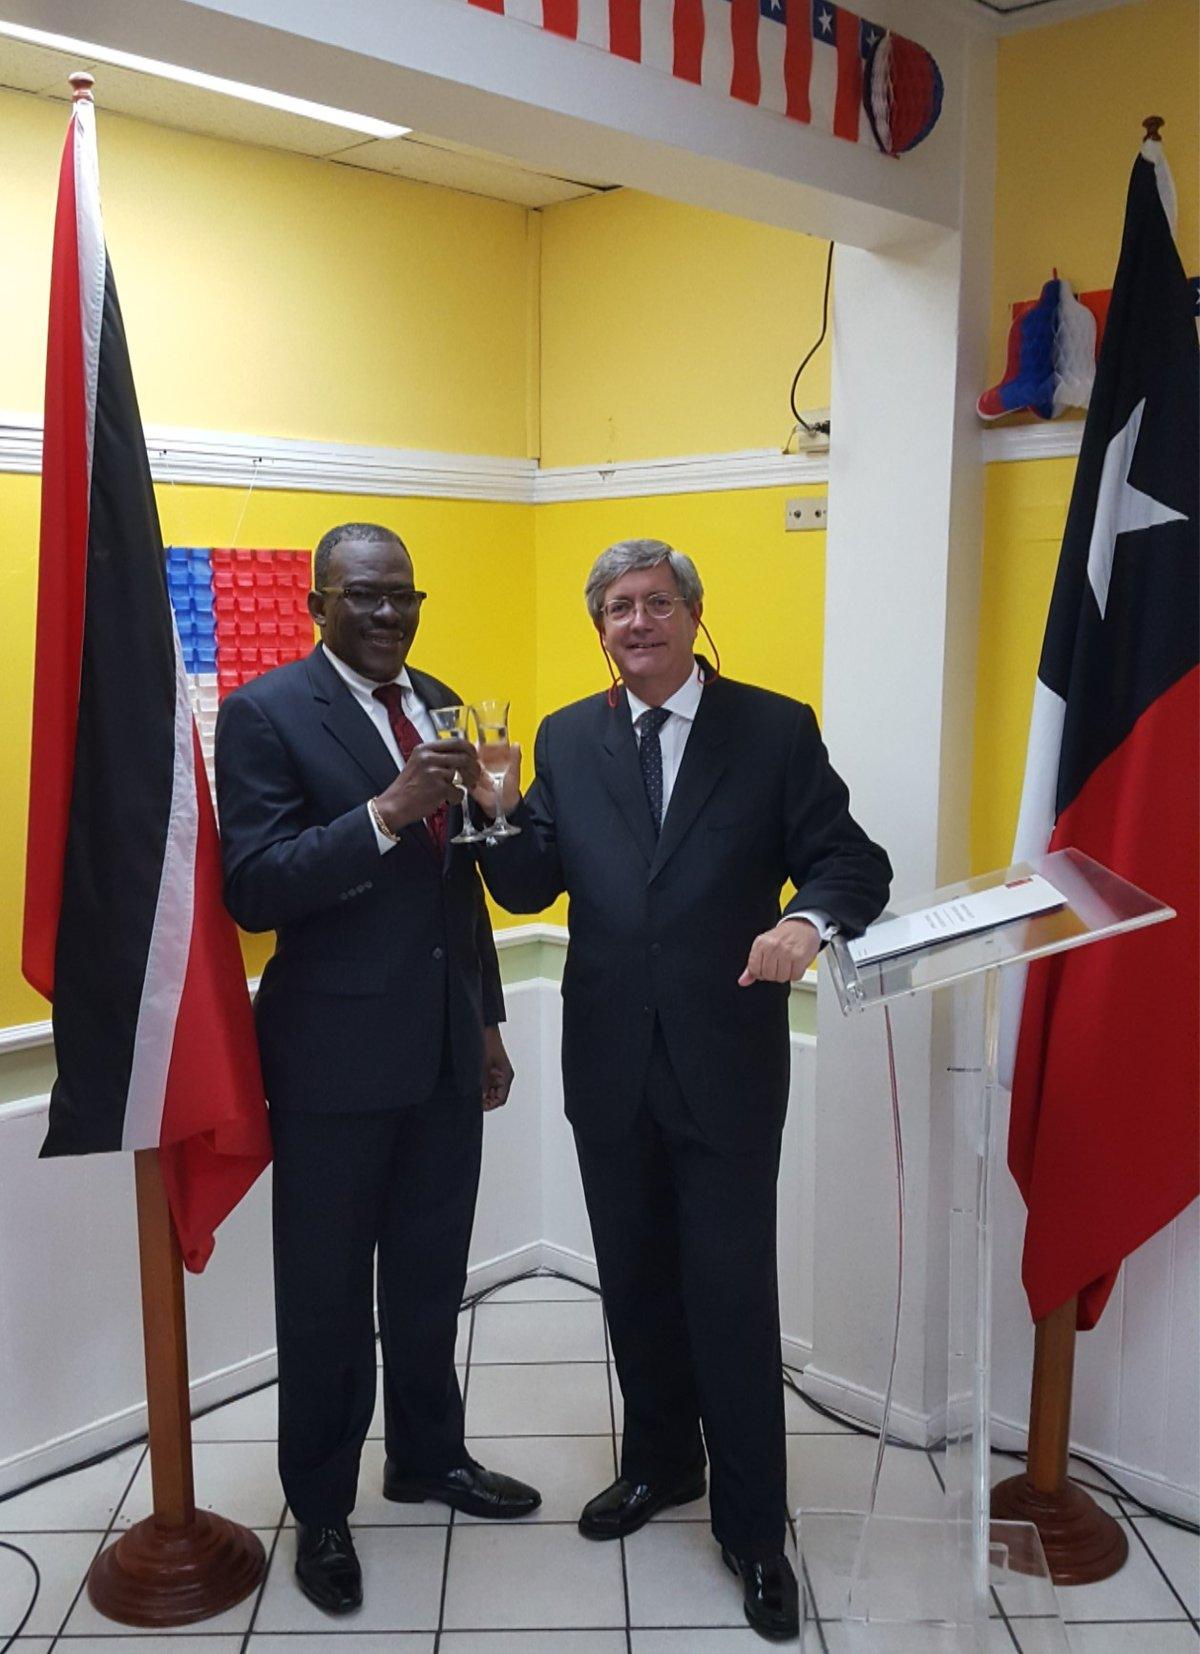 Major General (Ret'd) The Honourable Edmund Dillon toast with His Excellency Fernando Schmidt, Ambassador of the Republic of Chile